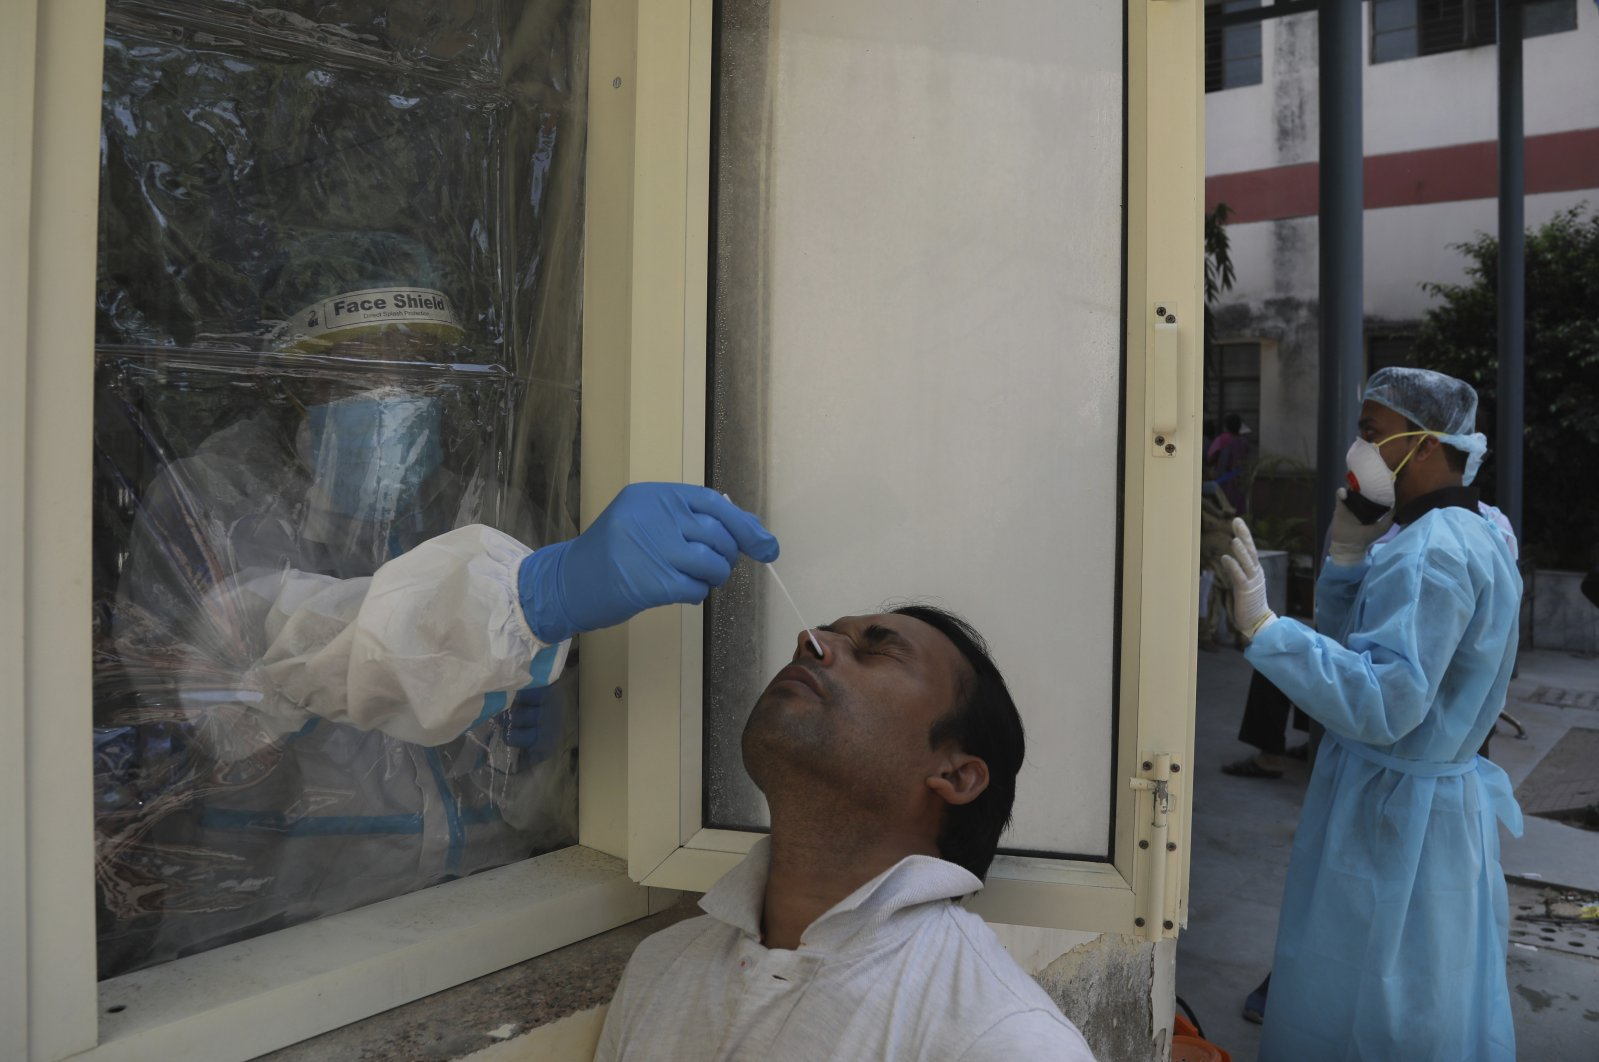 A health worker conducts COVID-19 test at a government hospital, New Delhi, Sept. 28, 2020. (AP Photo)